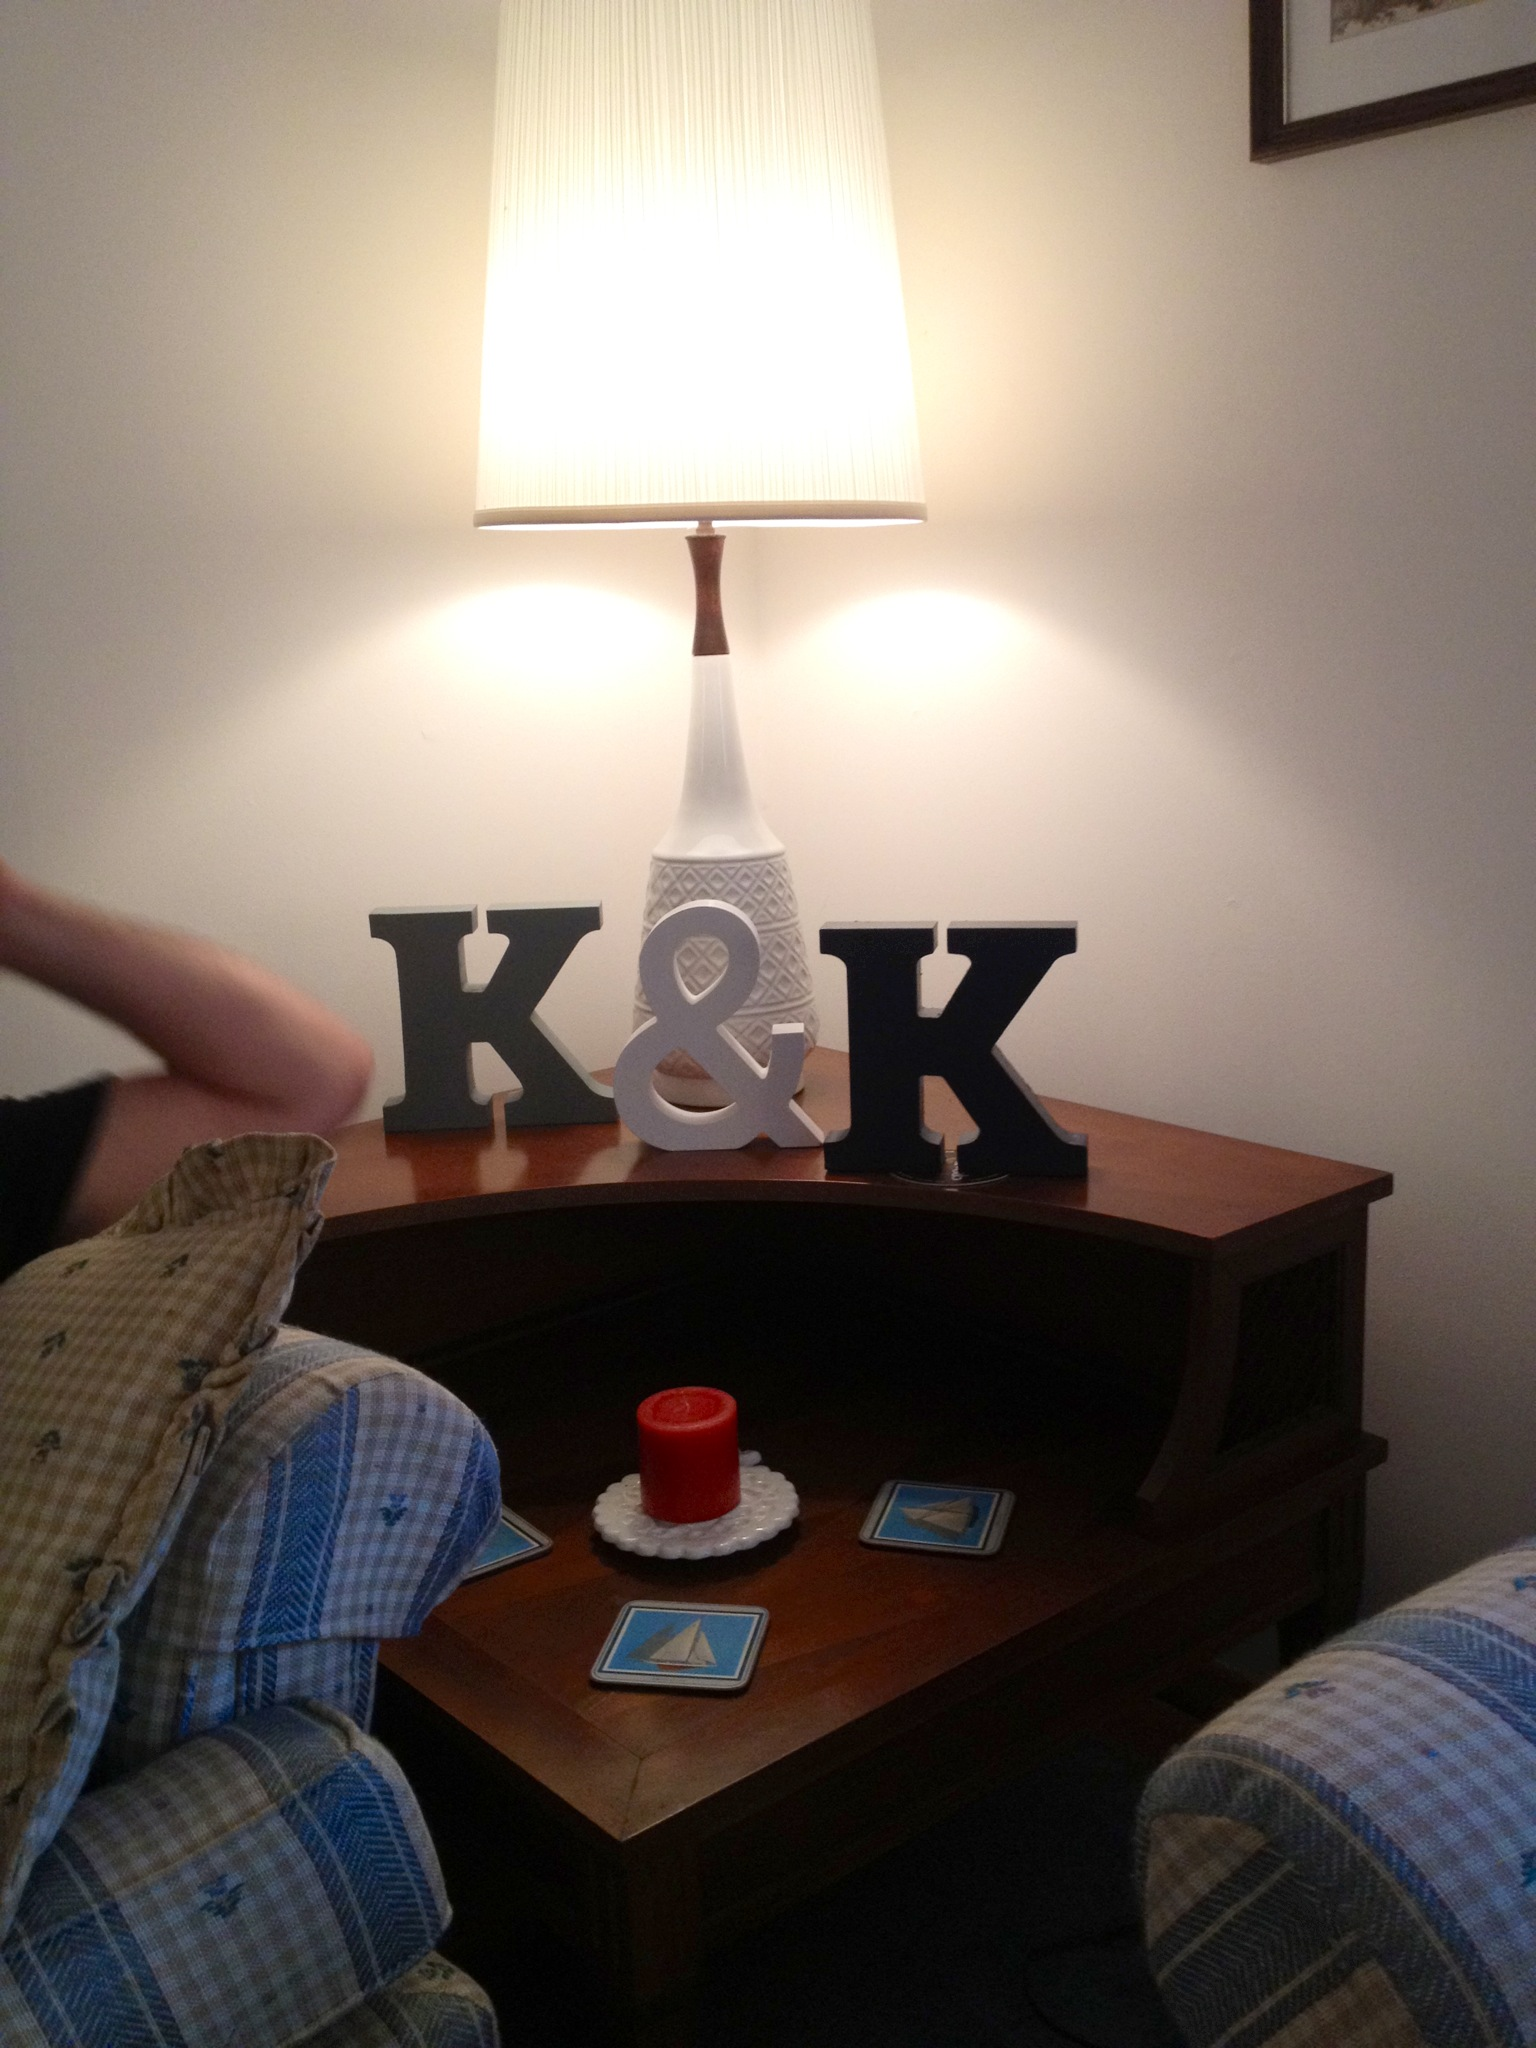 ...bought candles and a of couple K's, painting one to match the new wall...